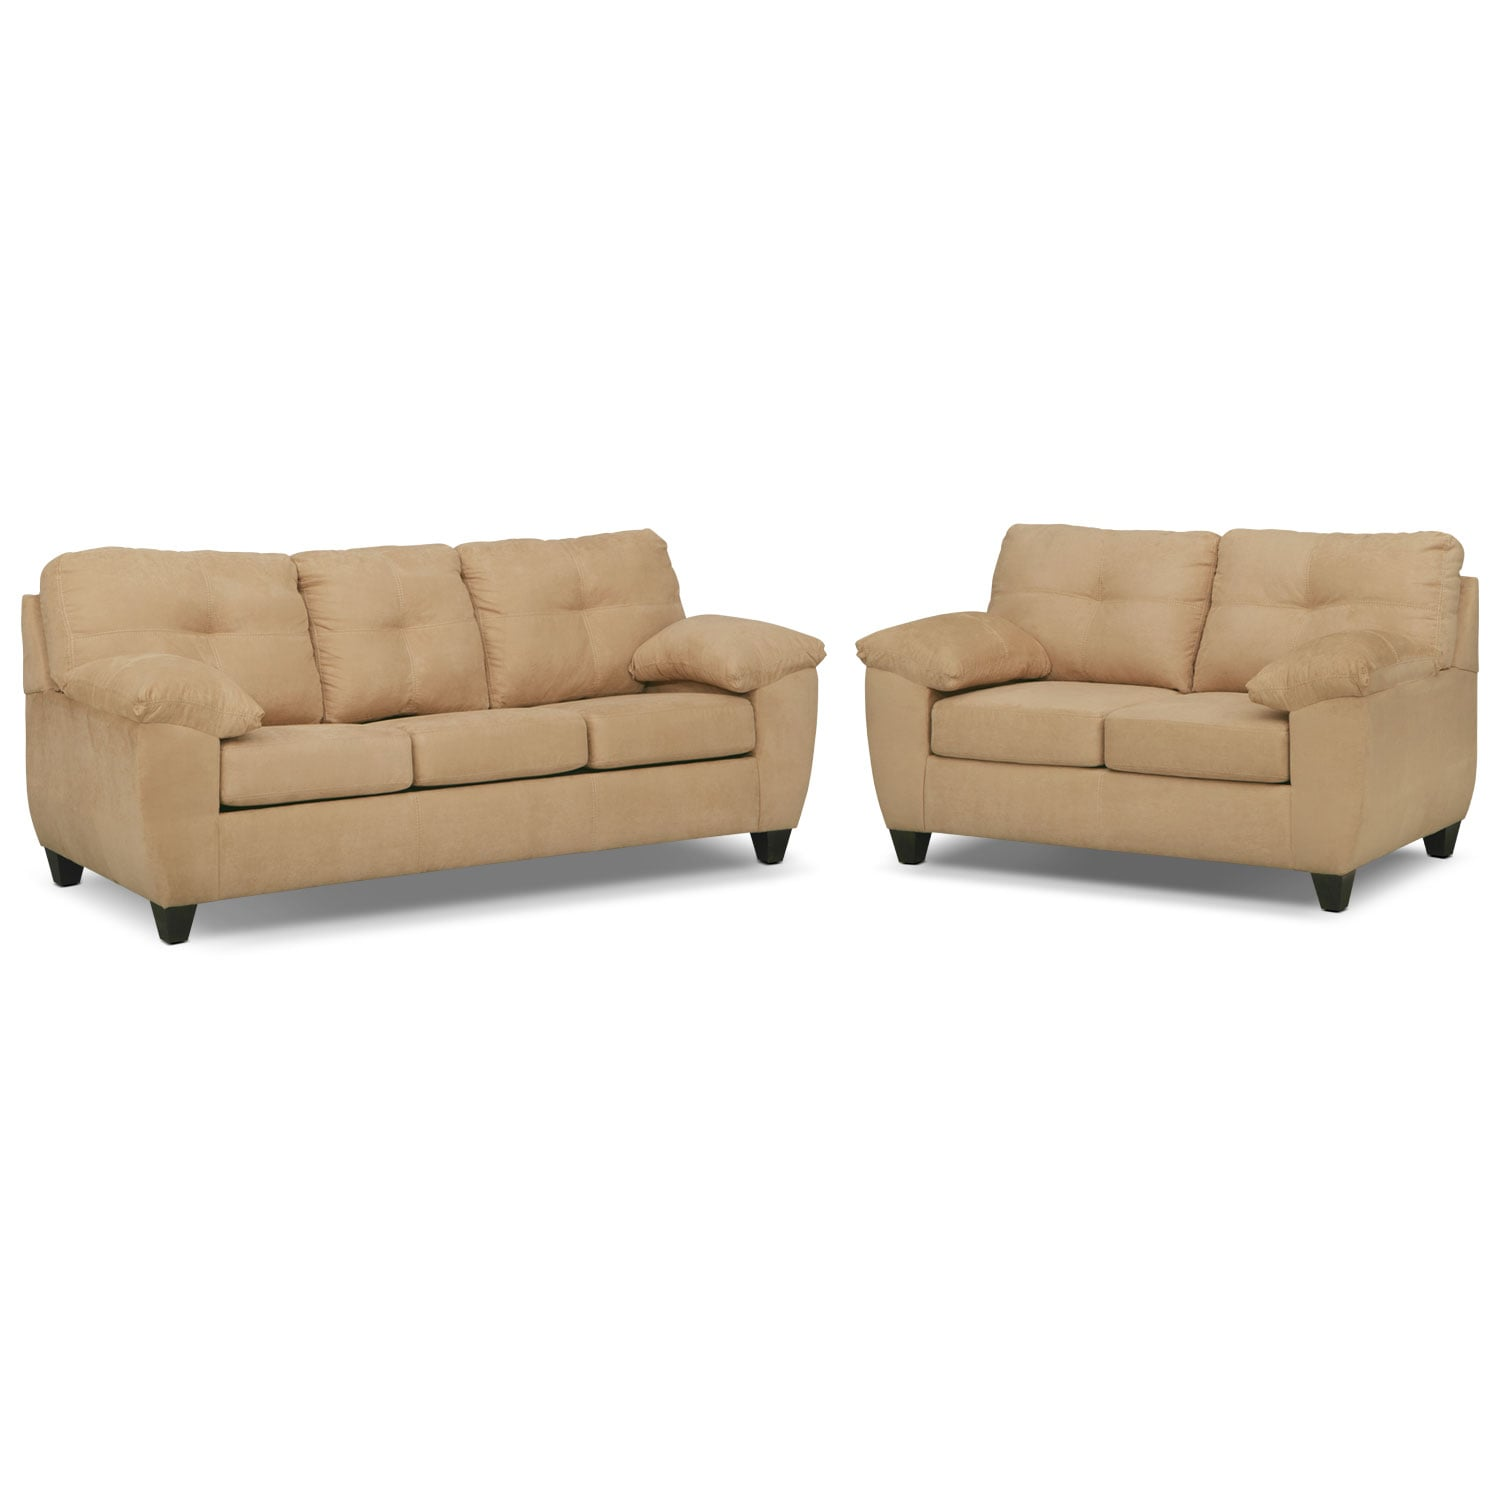 Rialto Memory Foam Sleeper Sofa and Loveseat Set - Camel